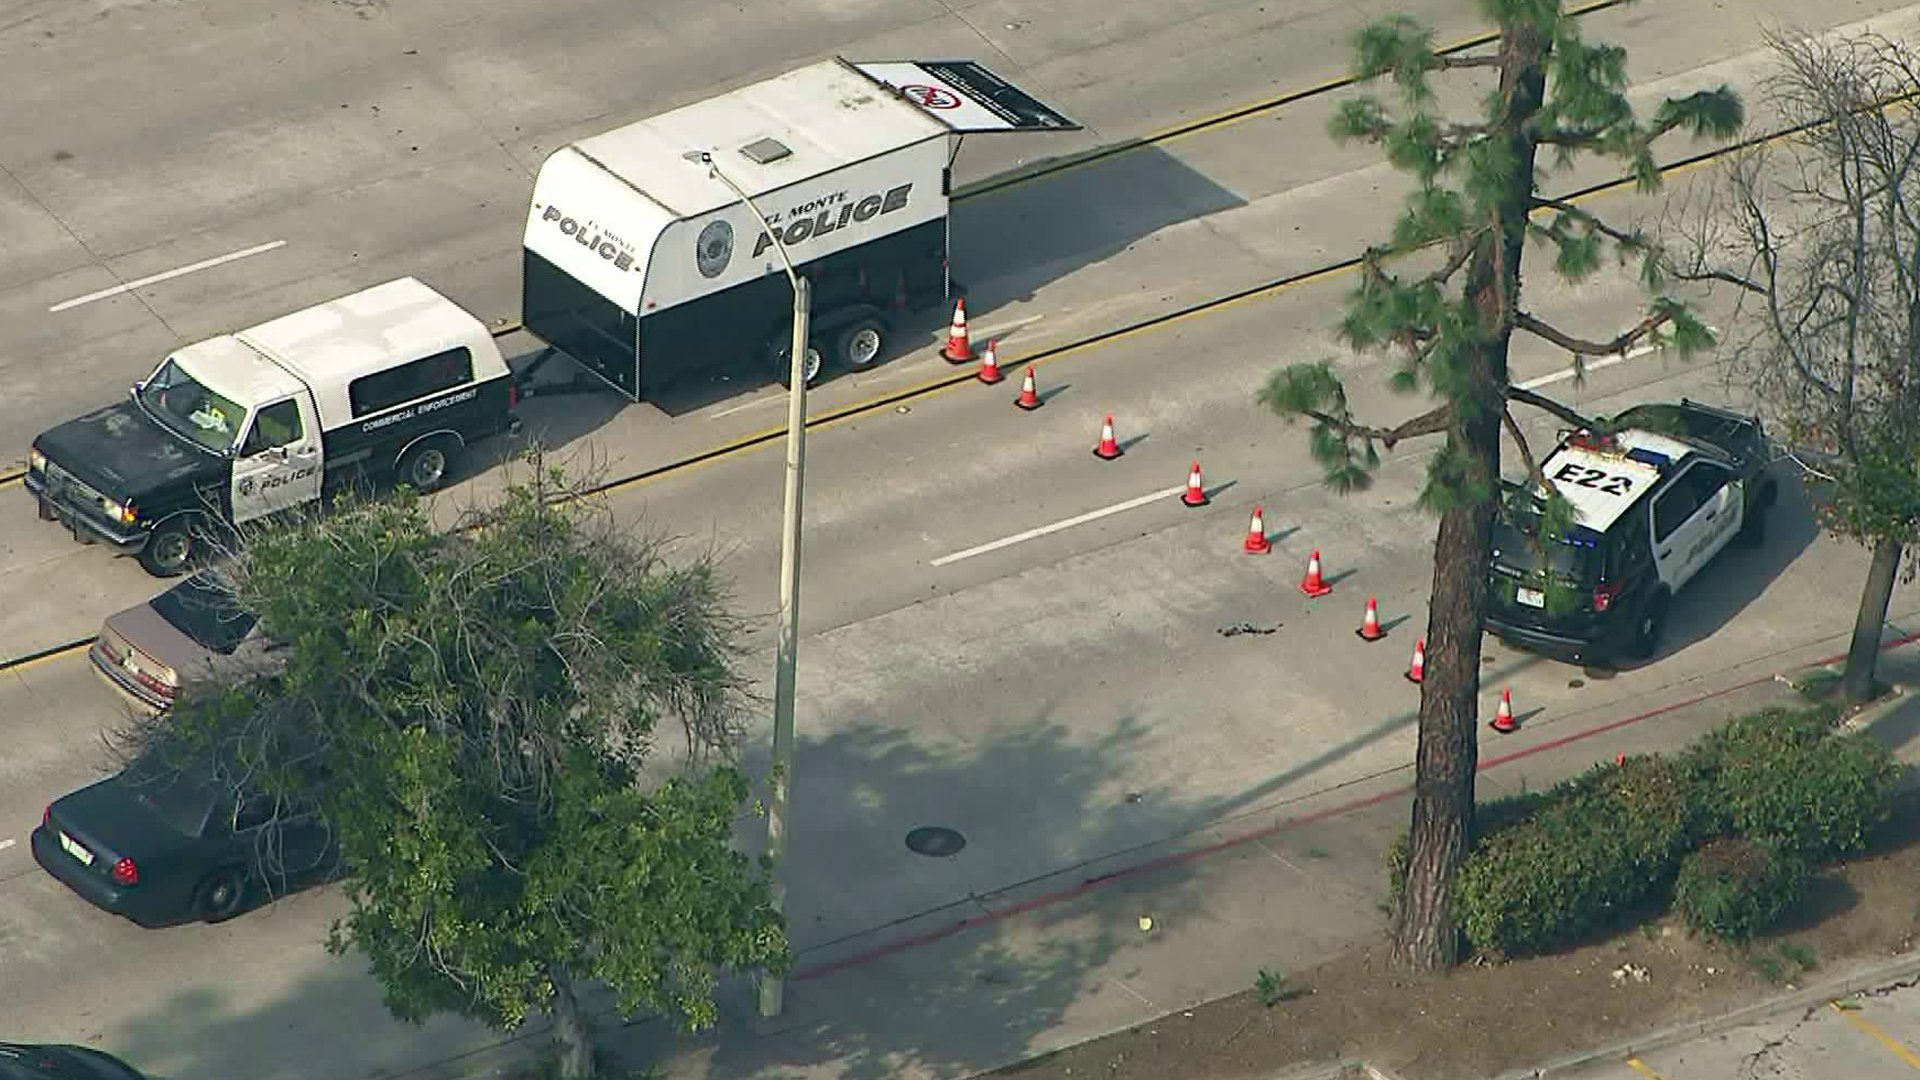 Sky5 footage shows a crime scene where a stabbing victim's body was found on Jan. 15, 2019.